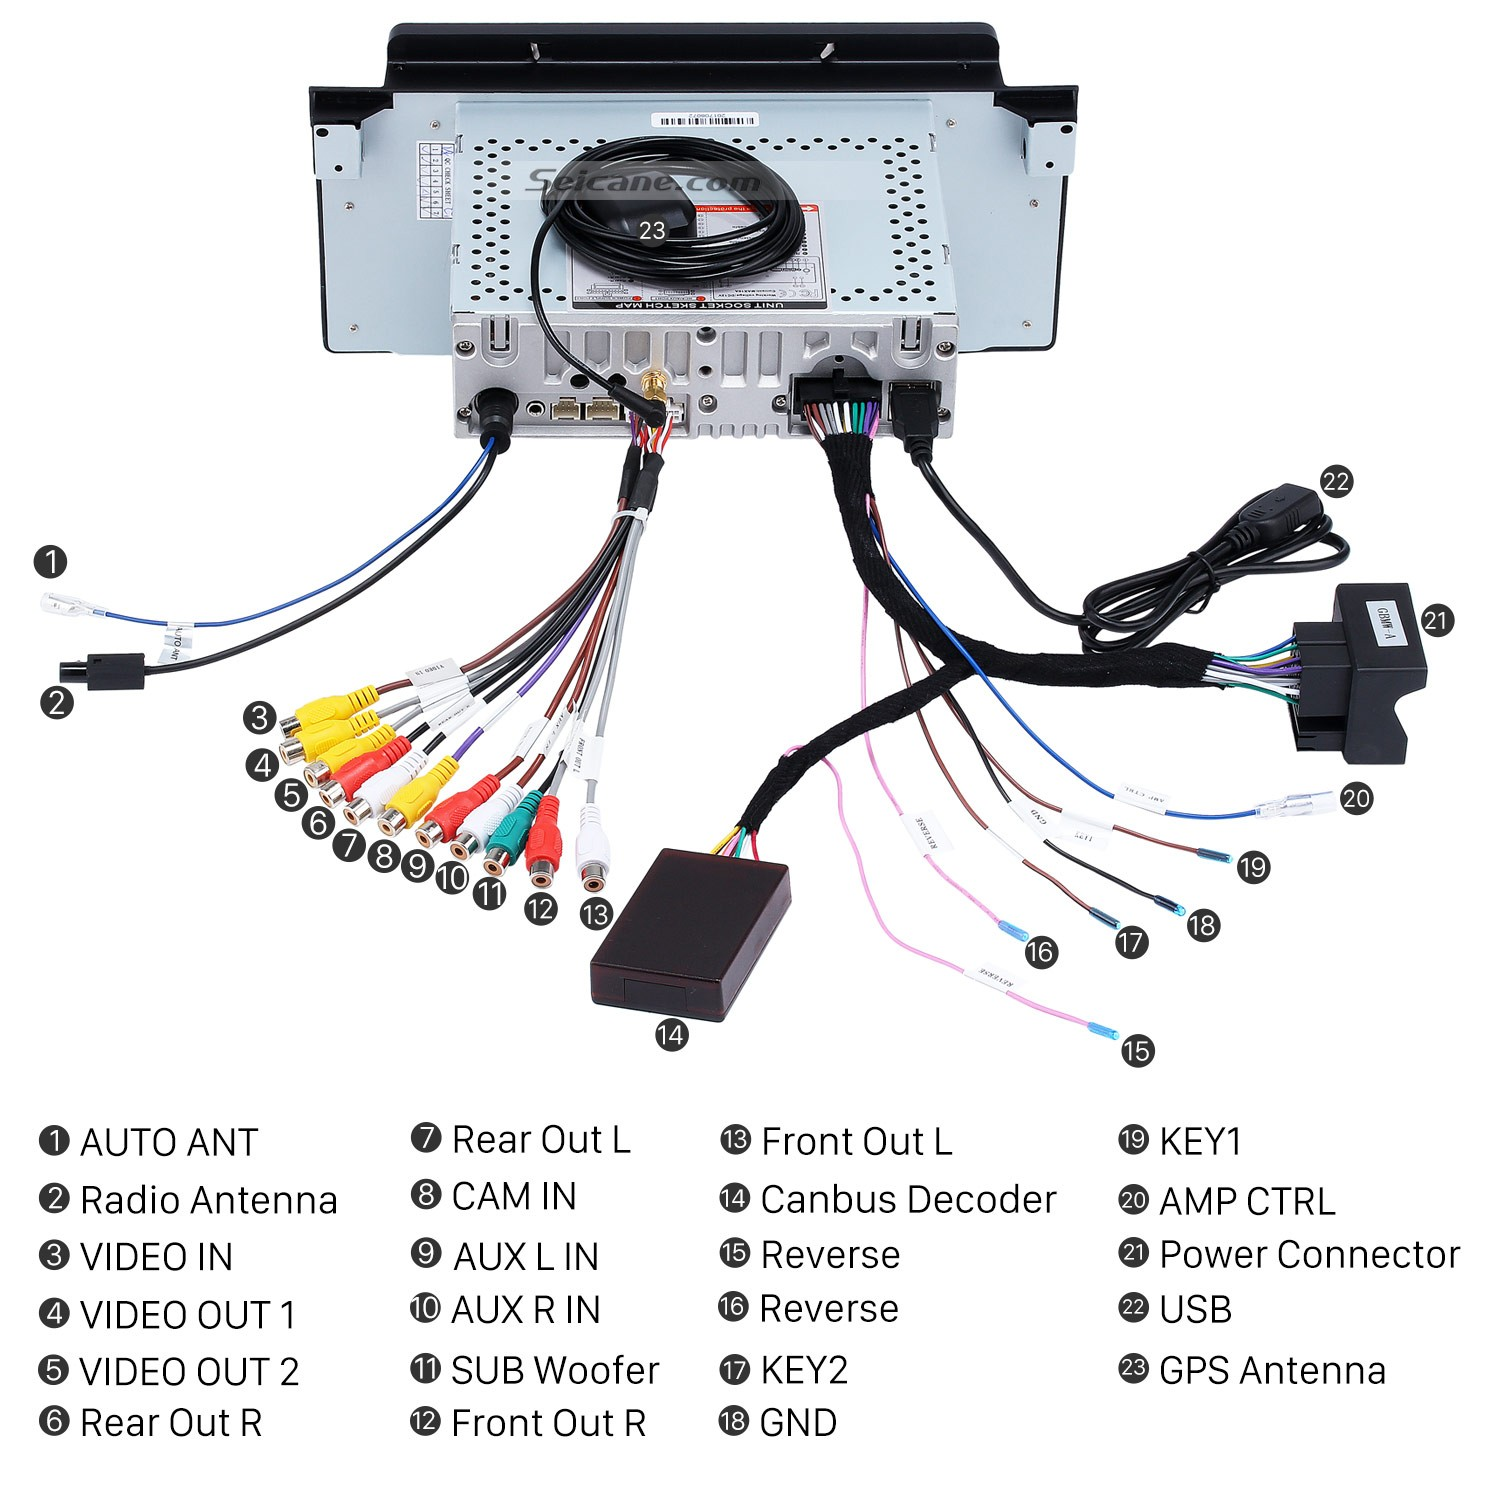 bmw e53 stereo wiring diagram porsche how to upgrade a 2000 2007 x5 3 0i 0d 4 4i 6is